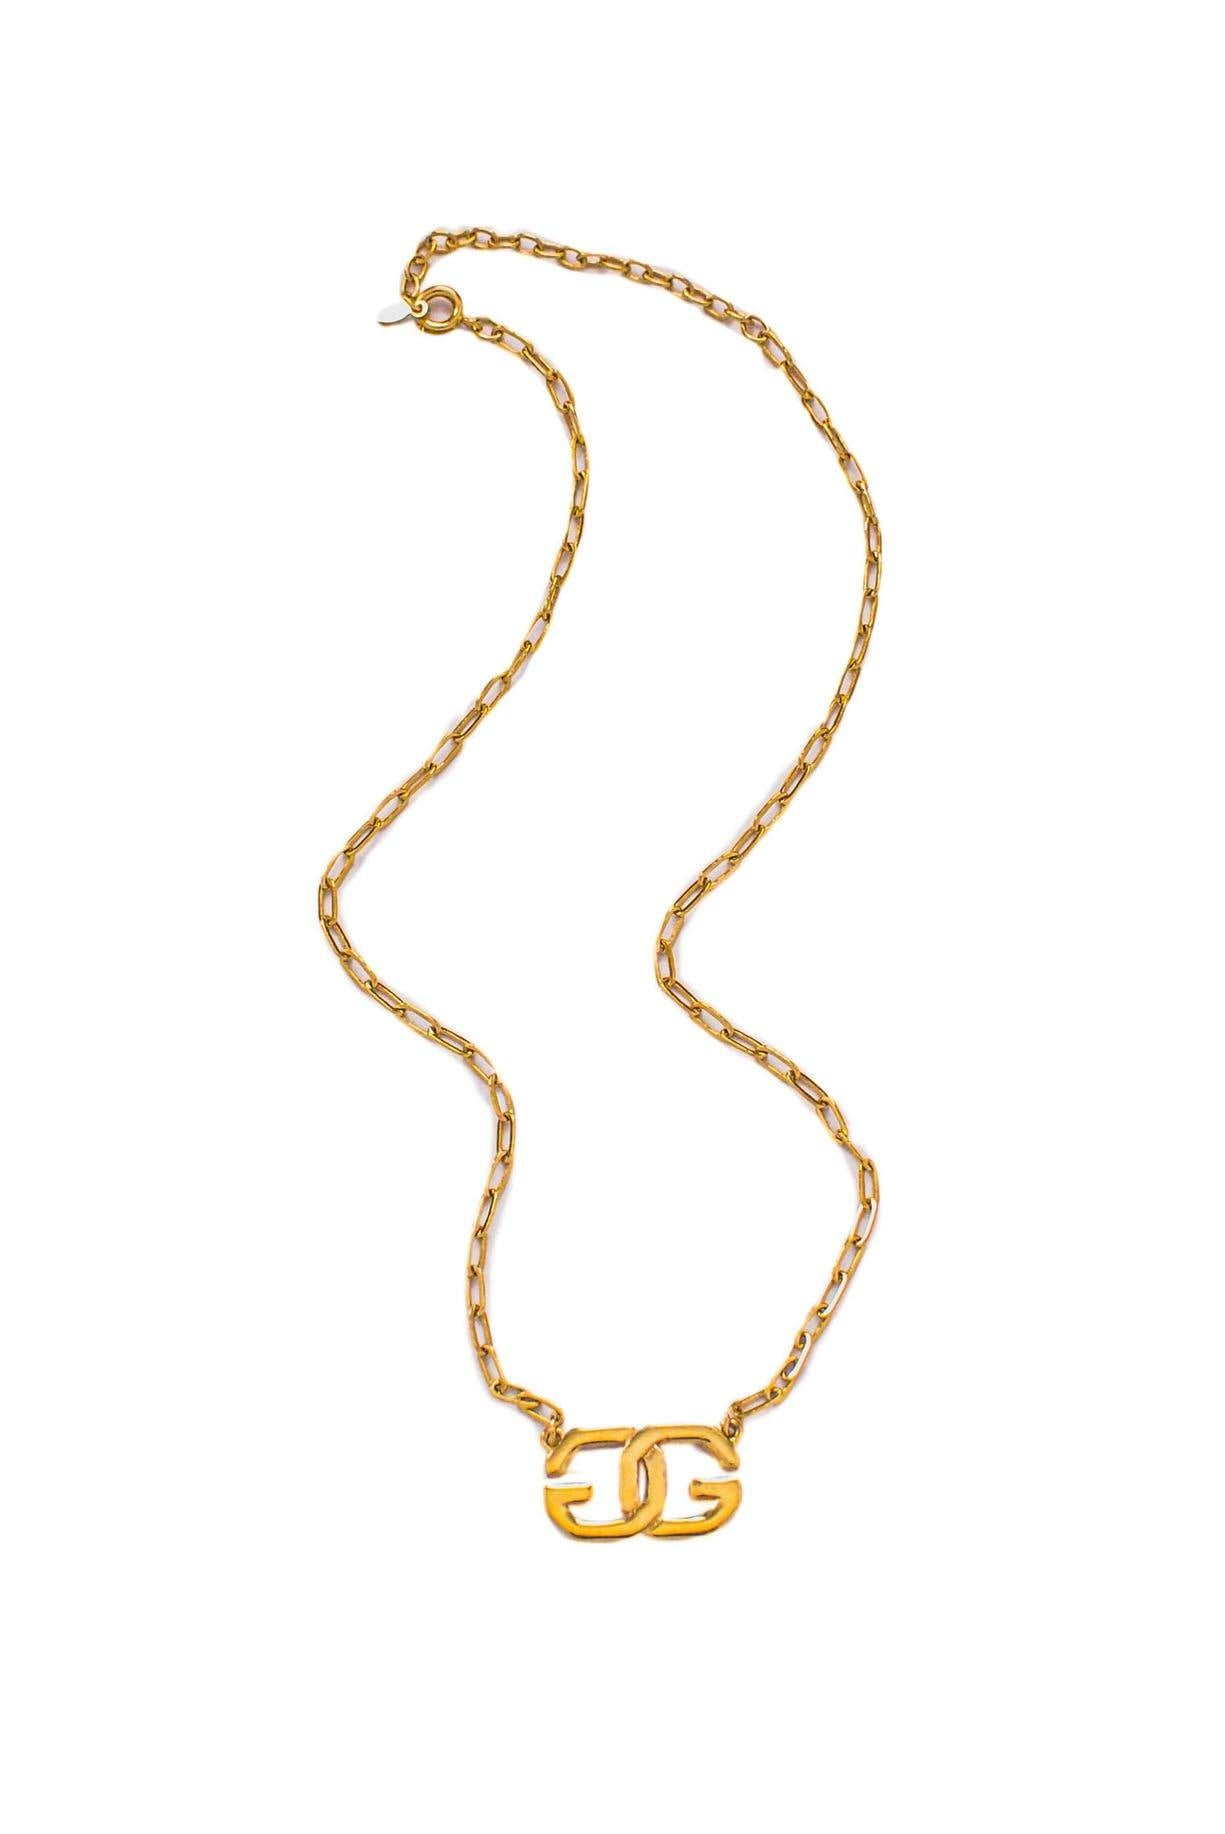 Vintage Givenchy Logo Necklace from Sweet & Spark.